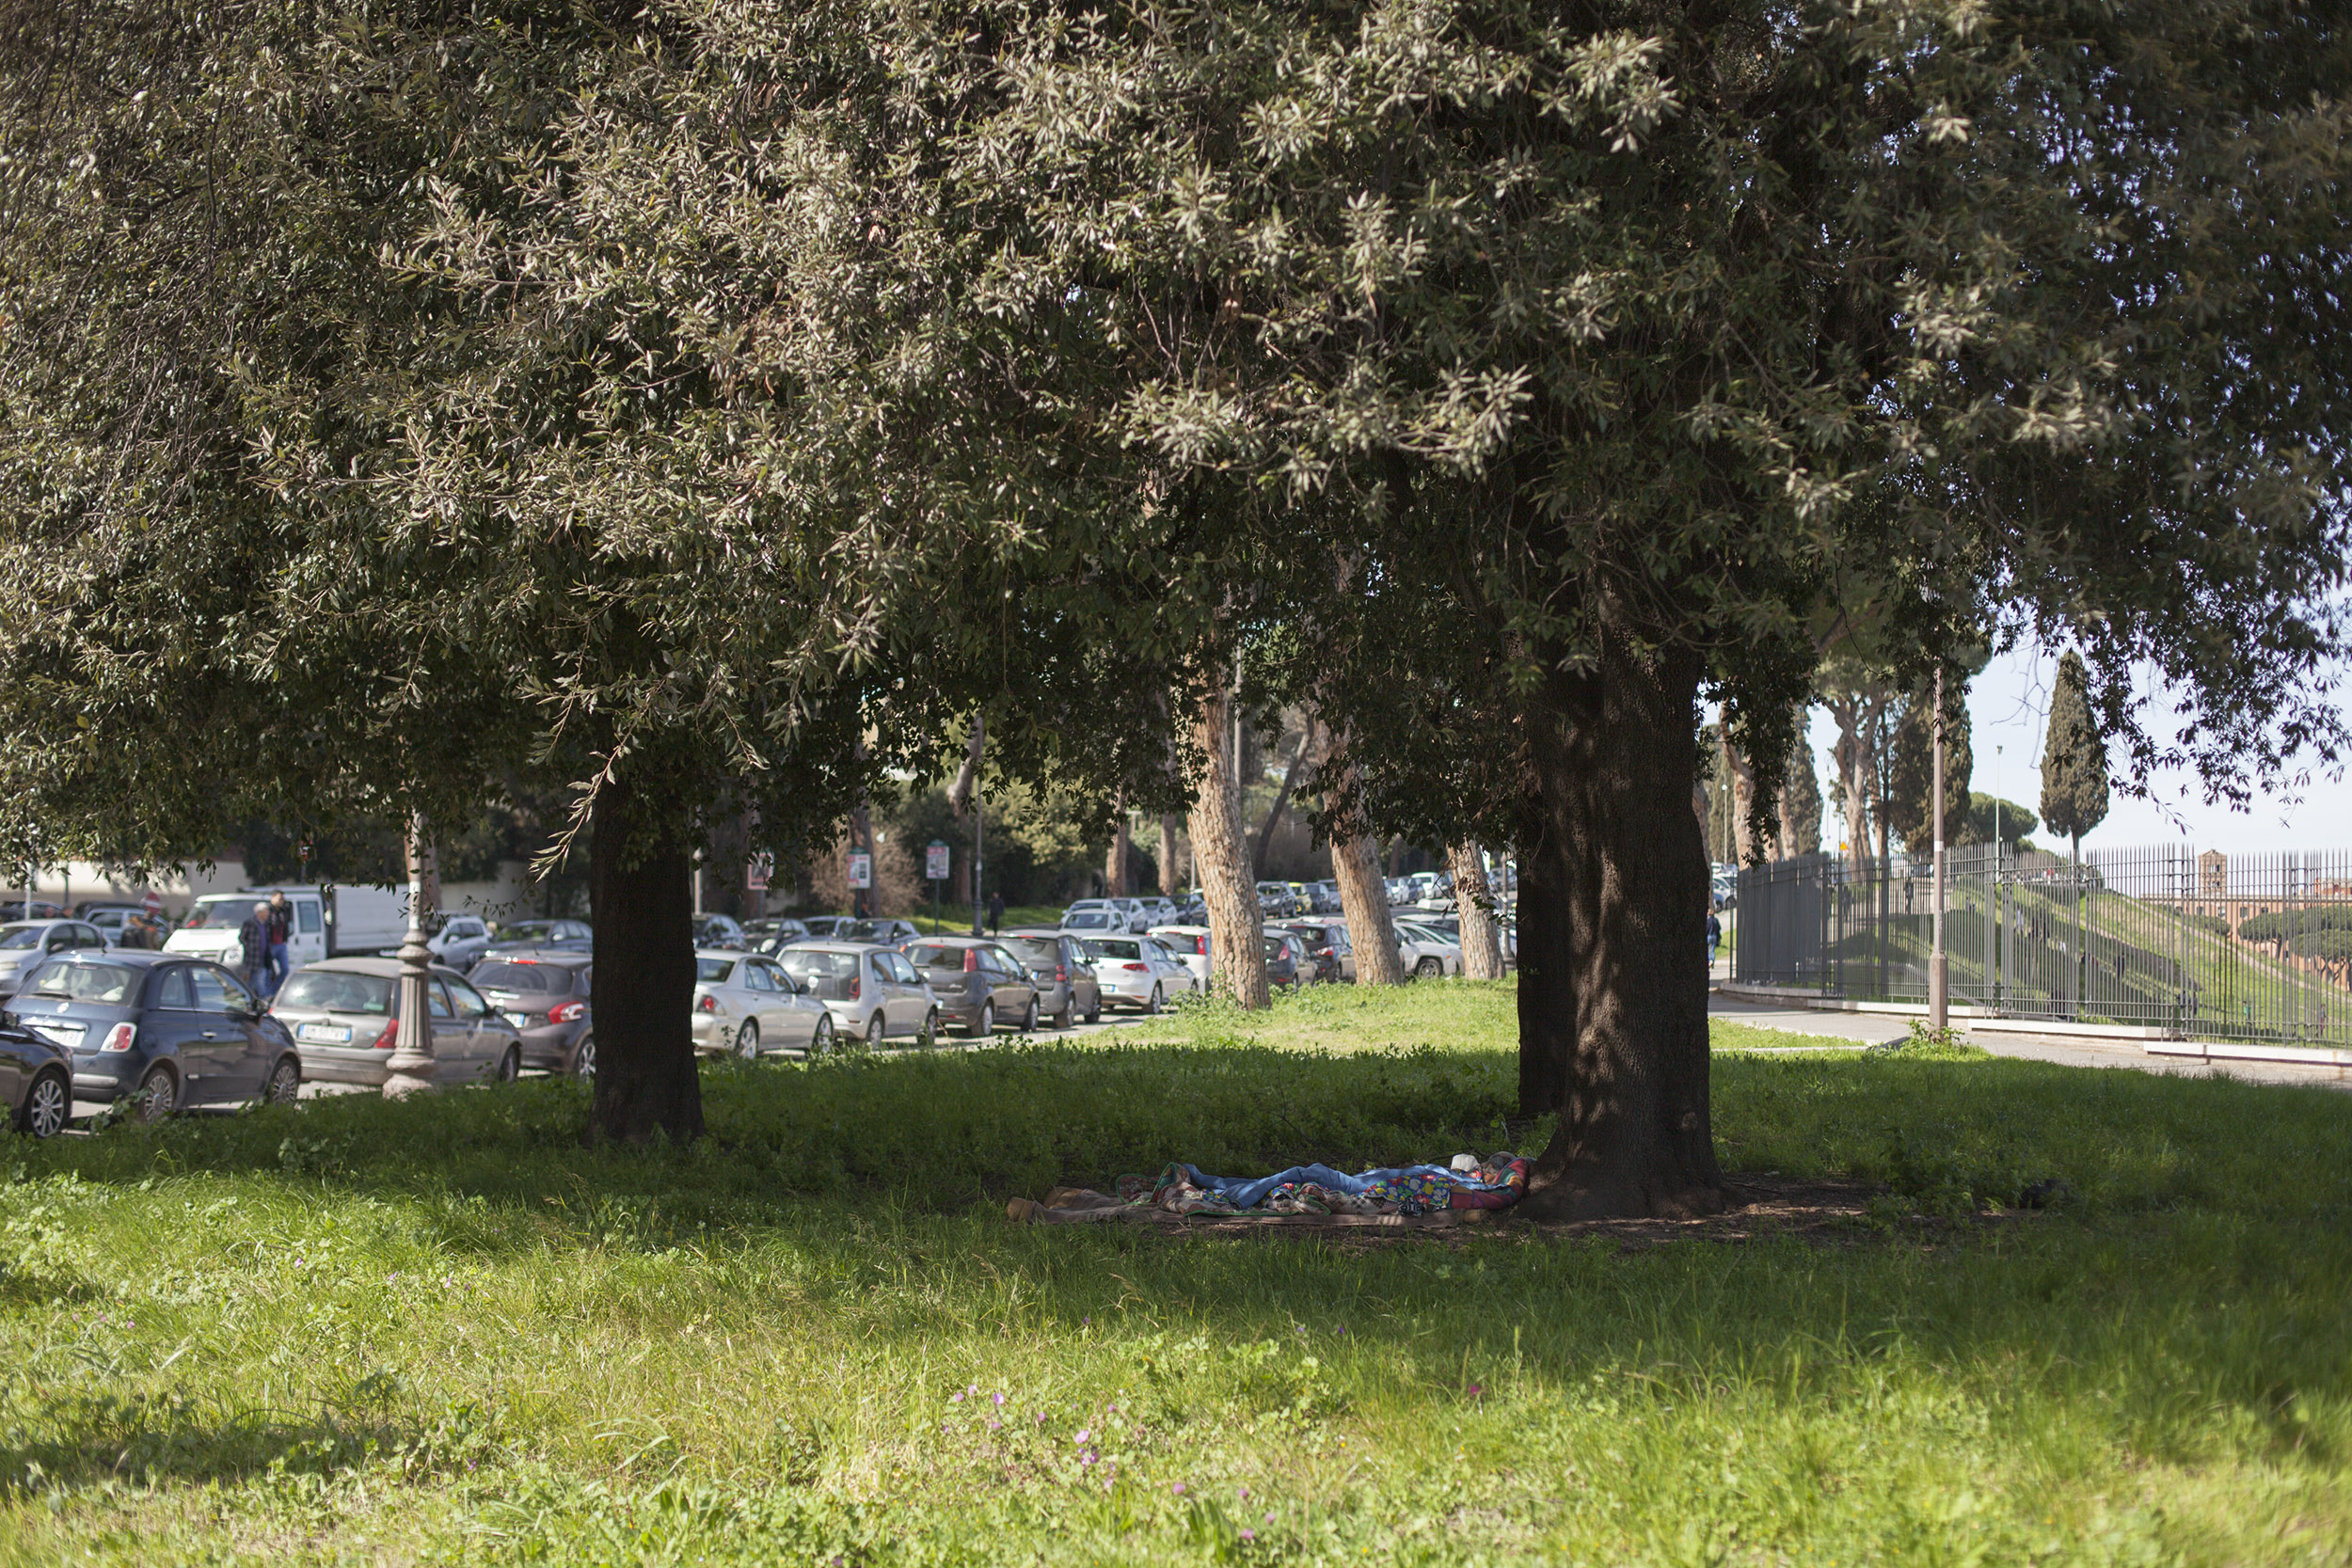 Makeshift bed under a tree, Rome, March 2017. From my project  Through The Eye of a Needle